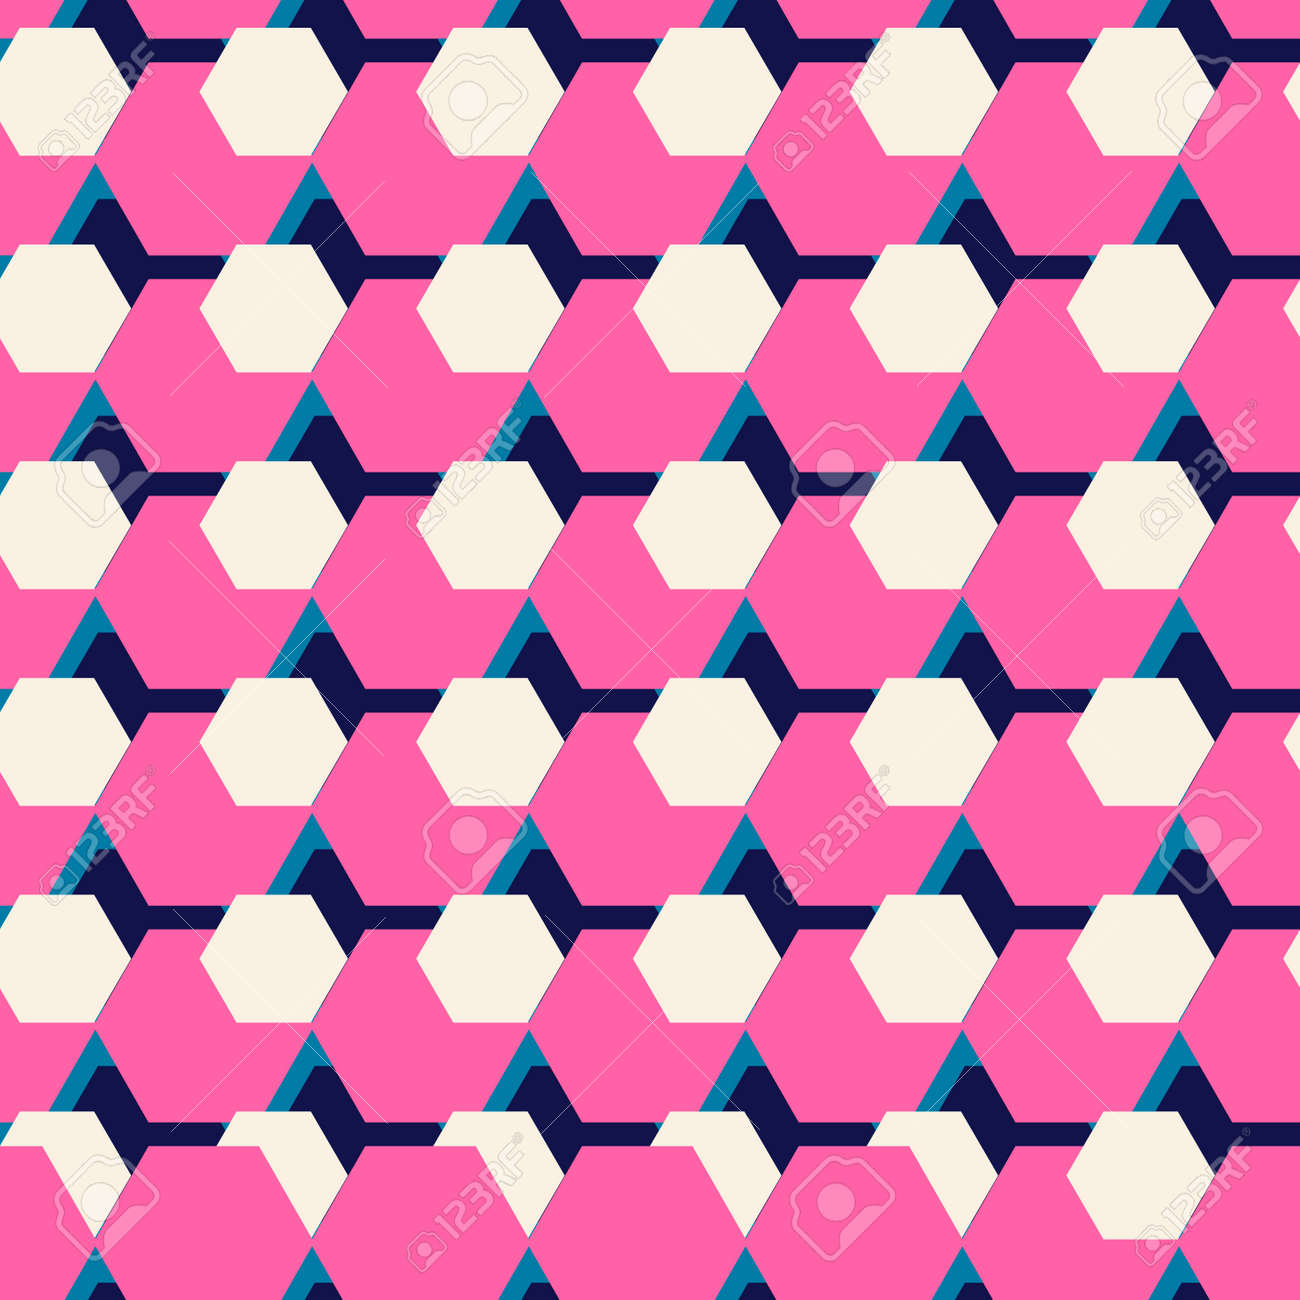 Colorful Abstract Mosaic Seamless Pattern With Hexagon Geometric